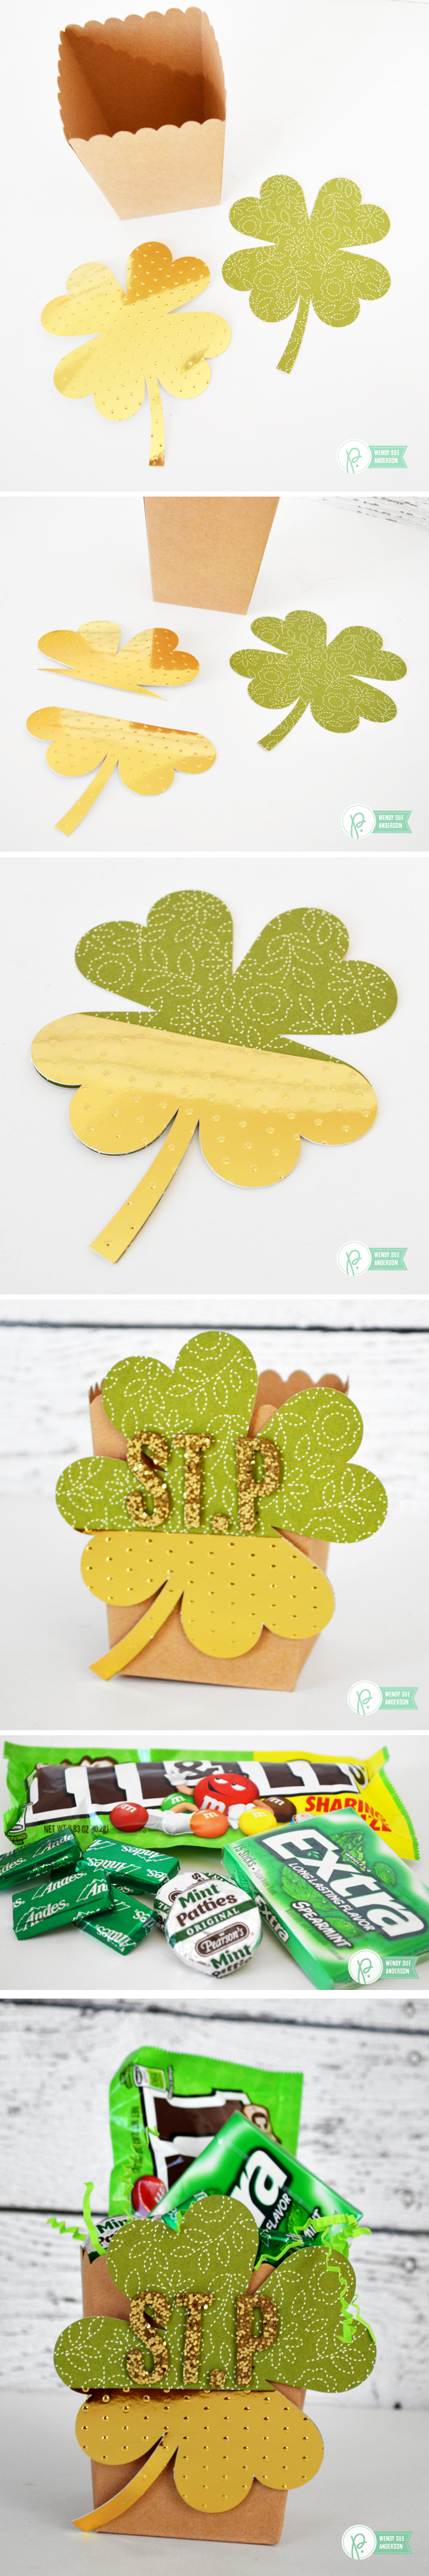 St. Patrick's Day Quick Gift - Treat ideas by @wendysue for @pebblesinc.